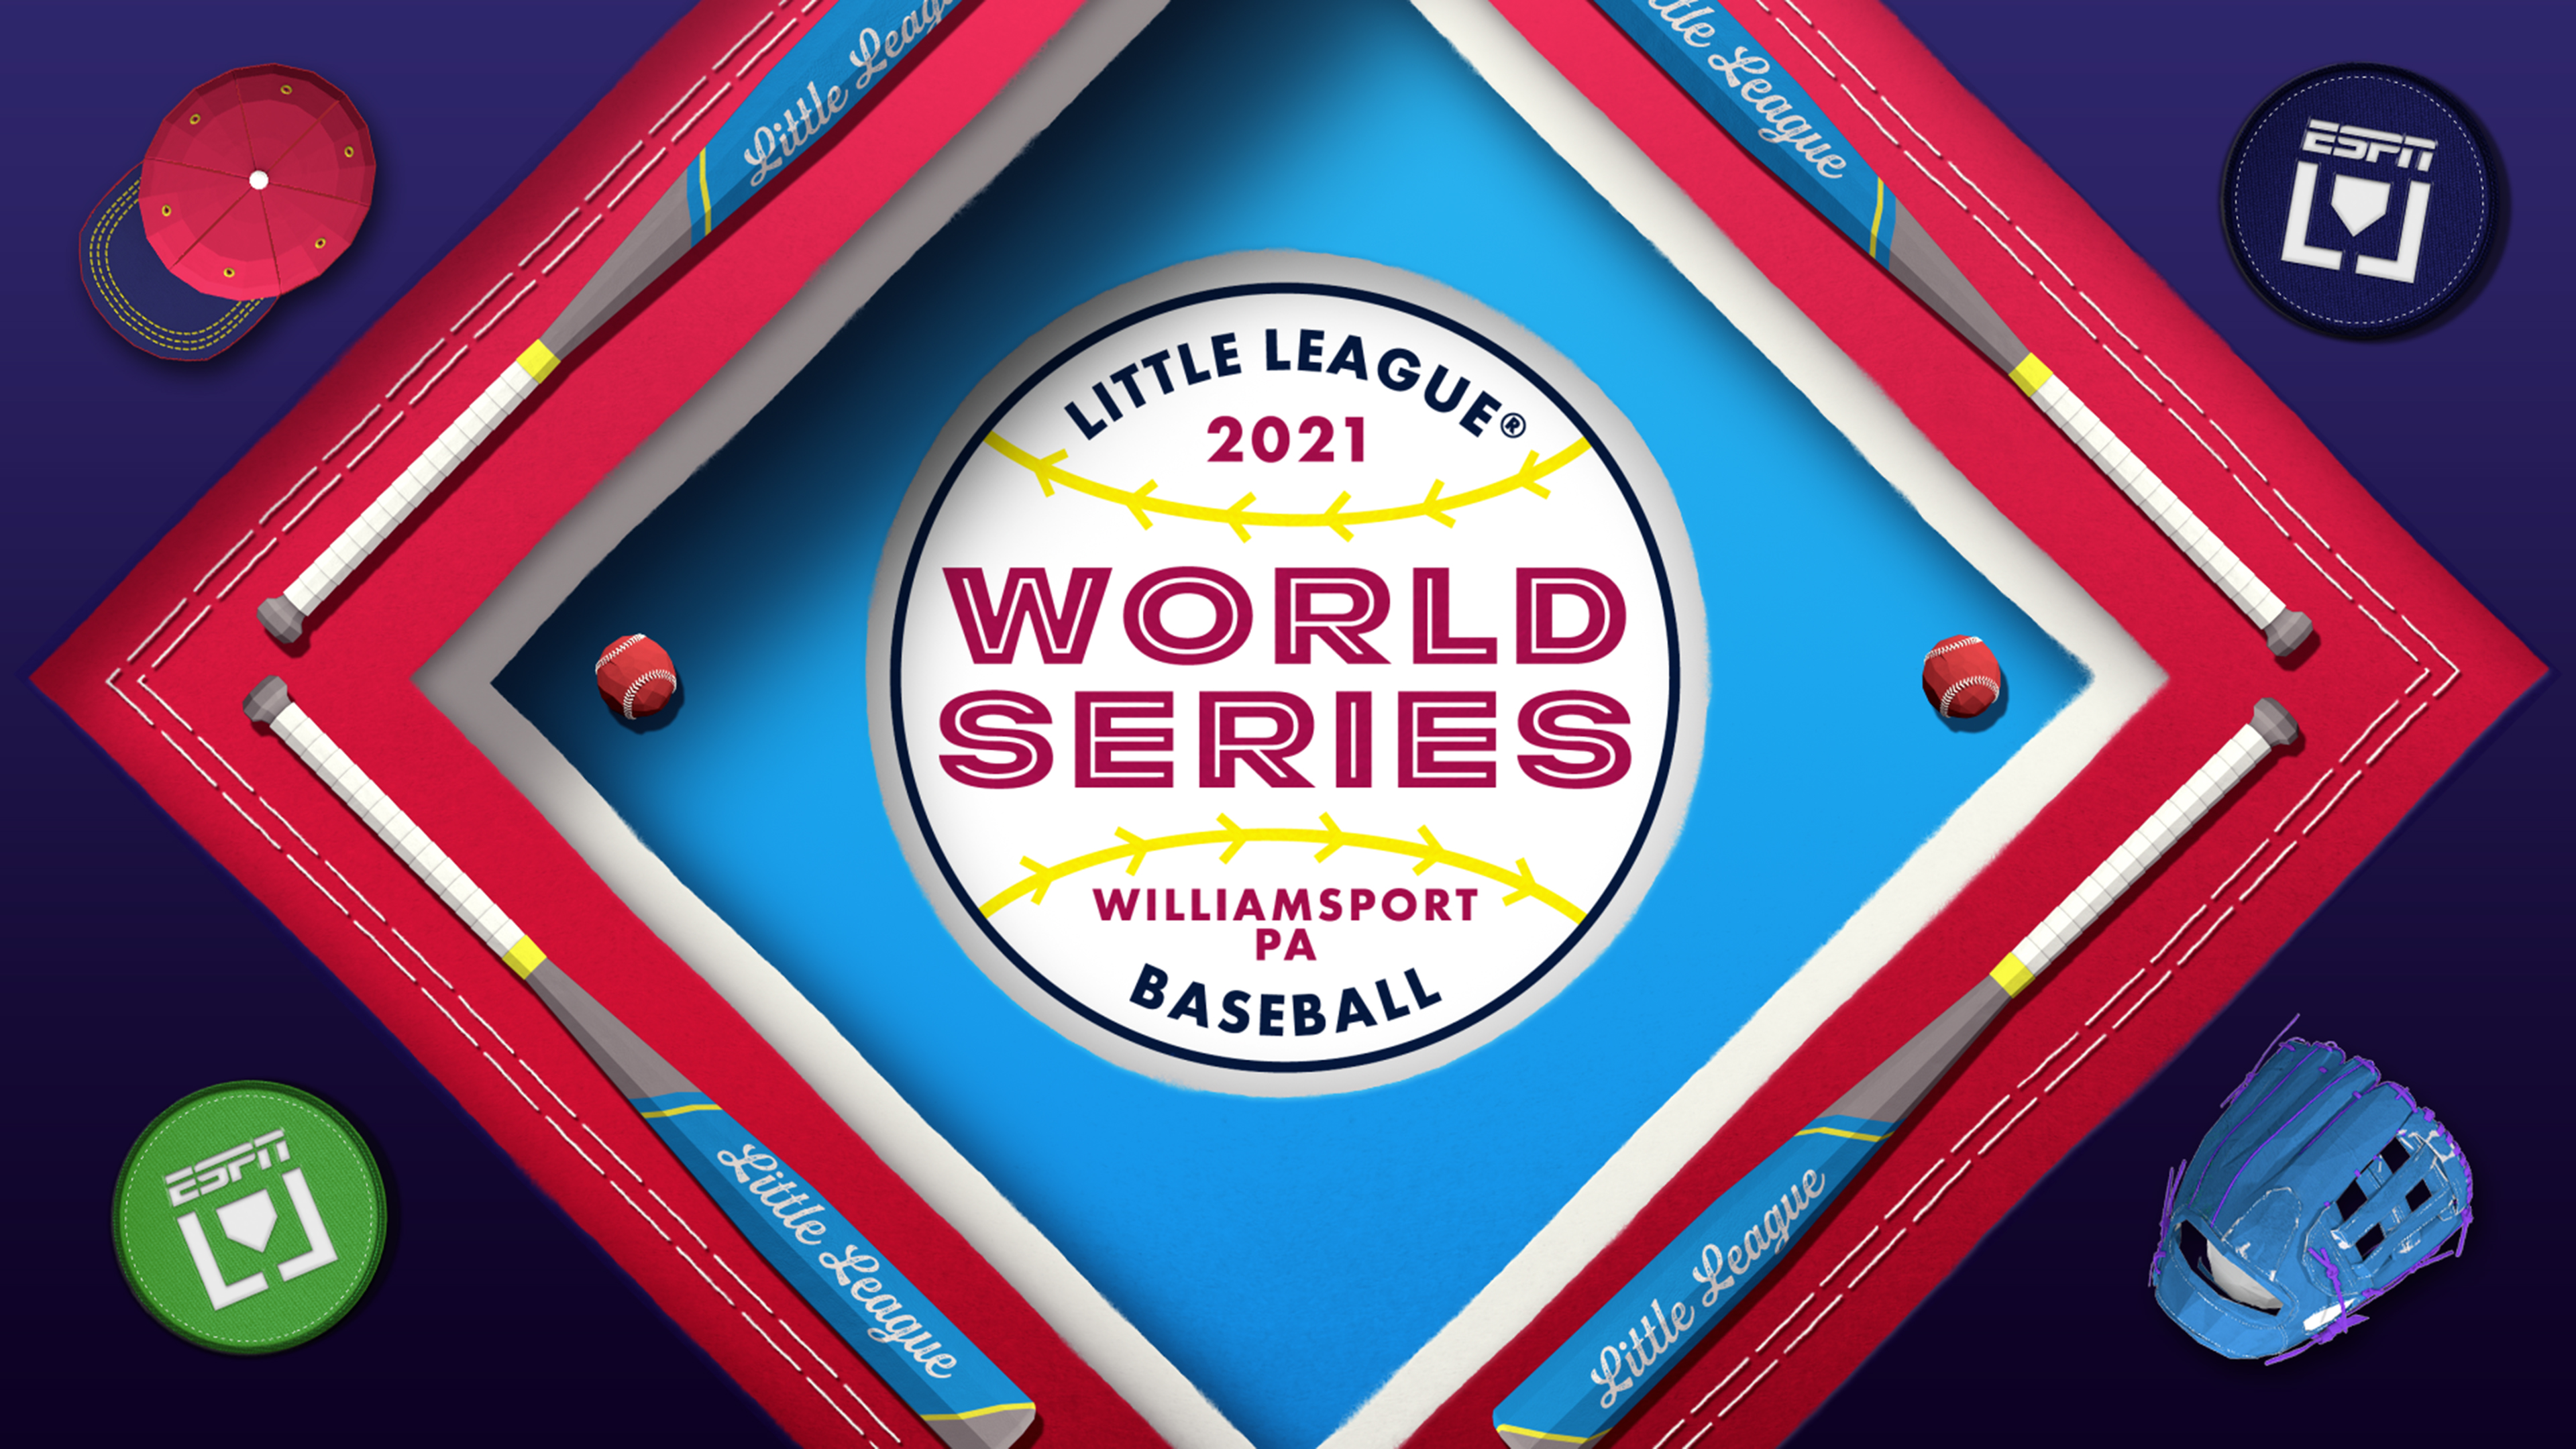 Little League World Series (International Championship Game)